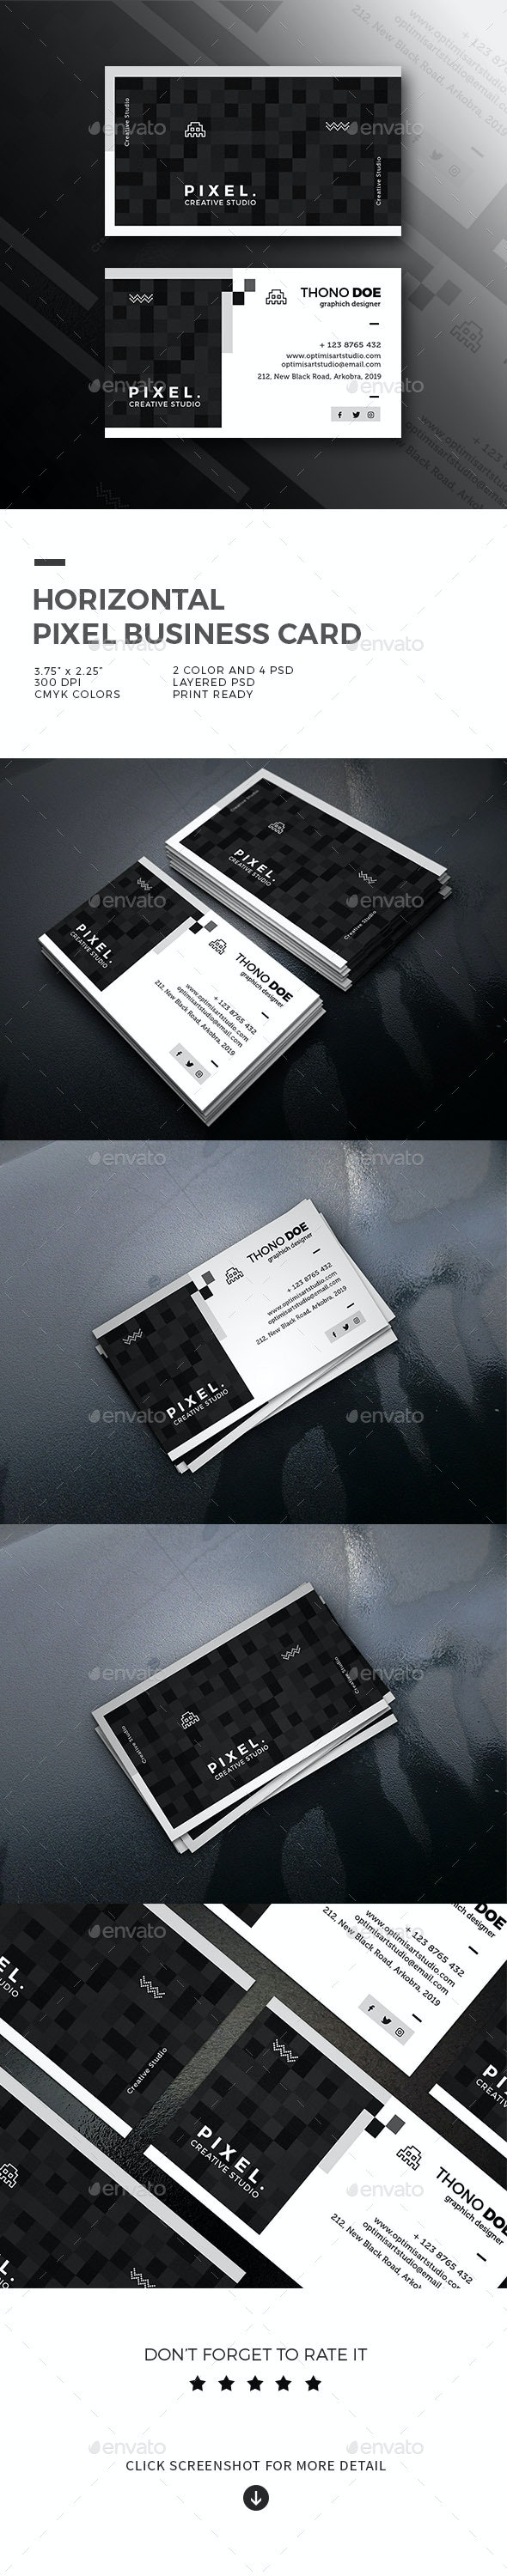 Horizontal Pixel Business Card - Creative Business Cards